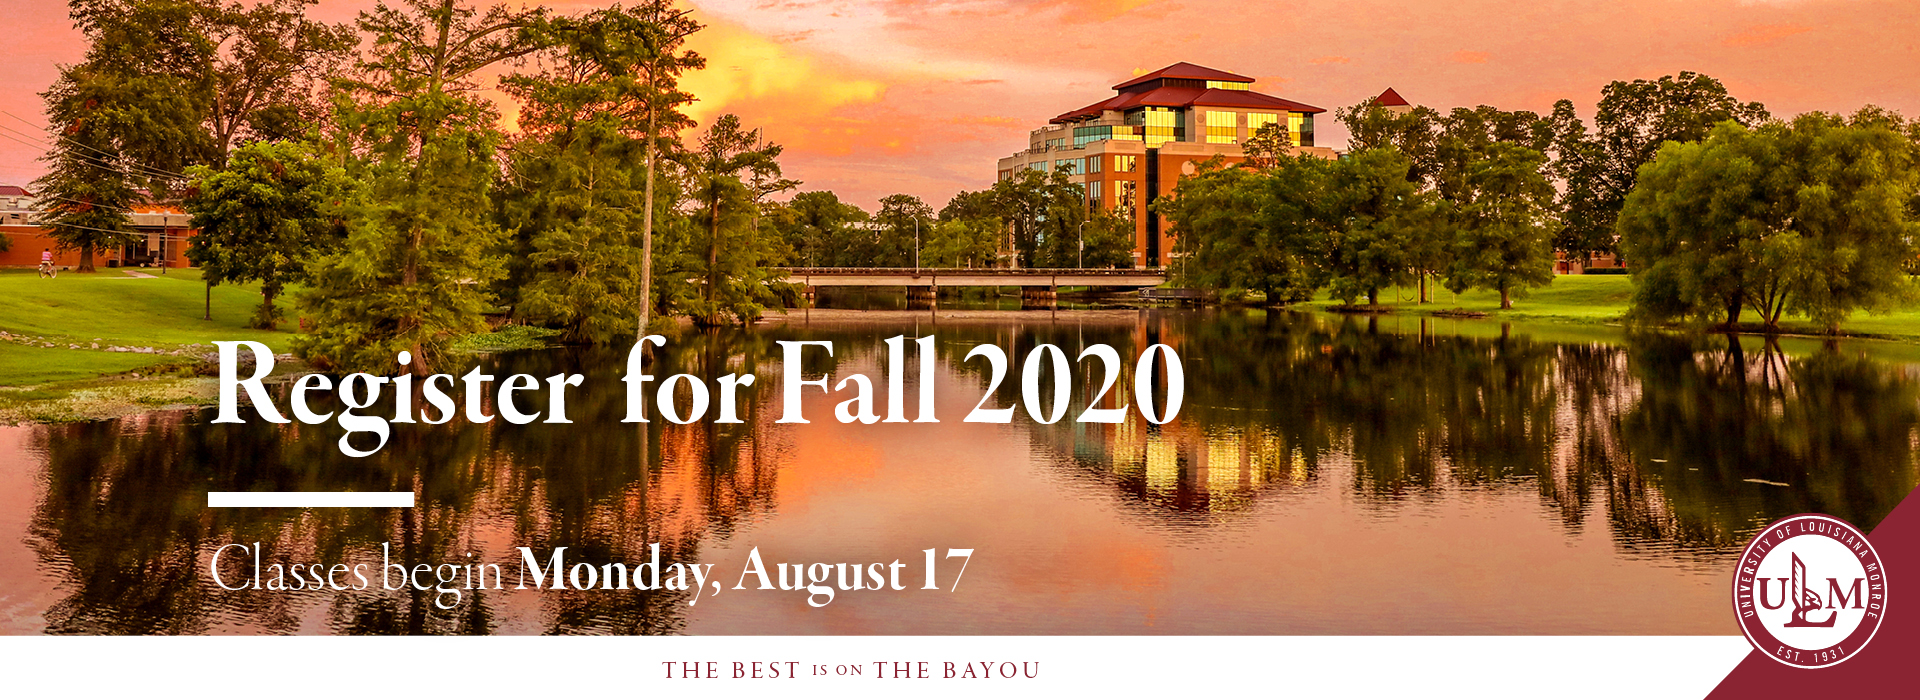 Register for Fall 2020 banner ad